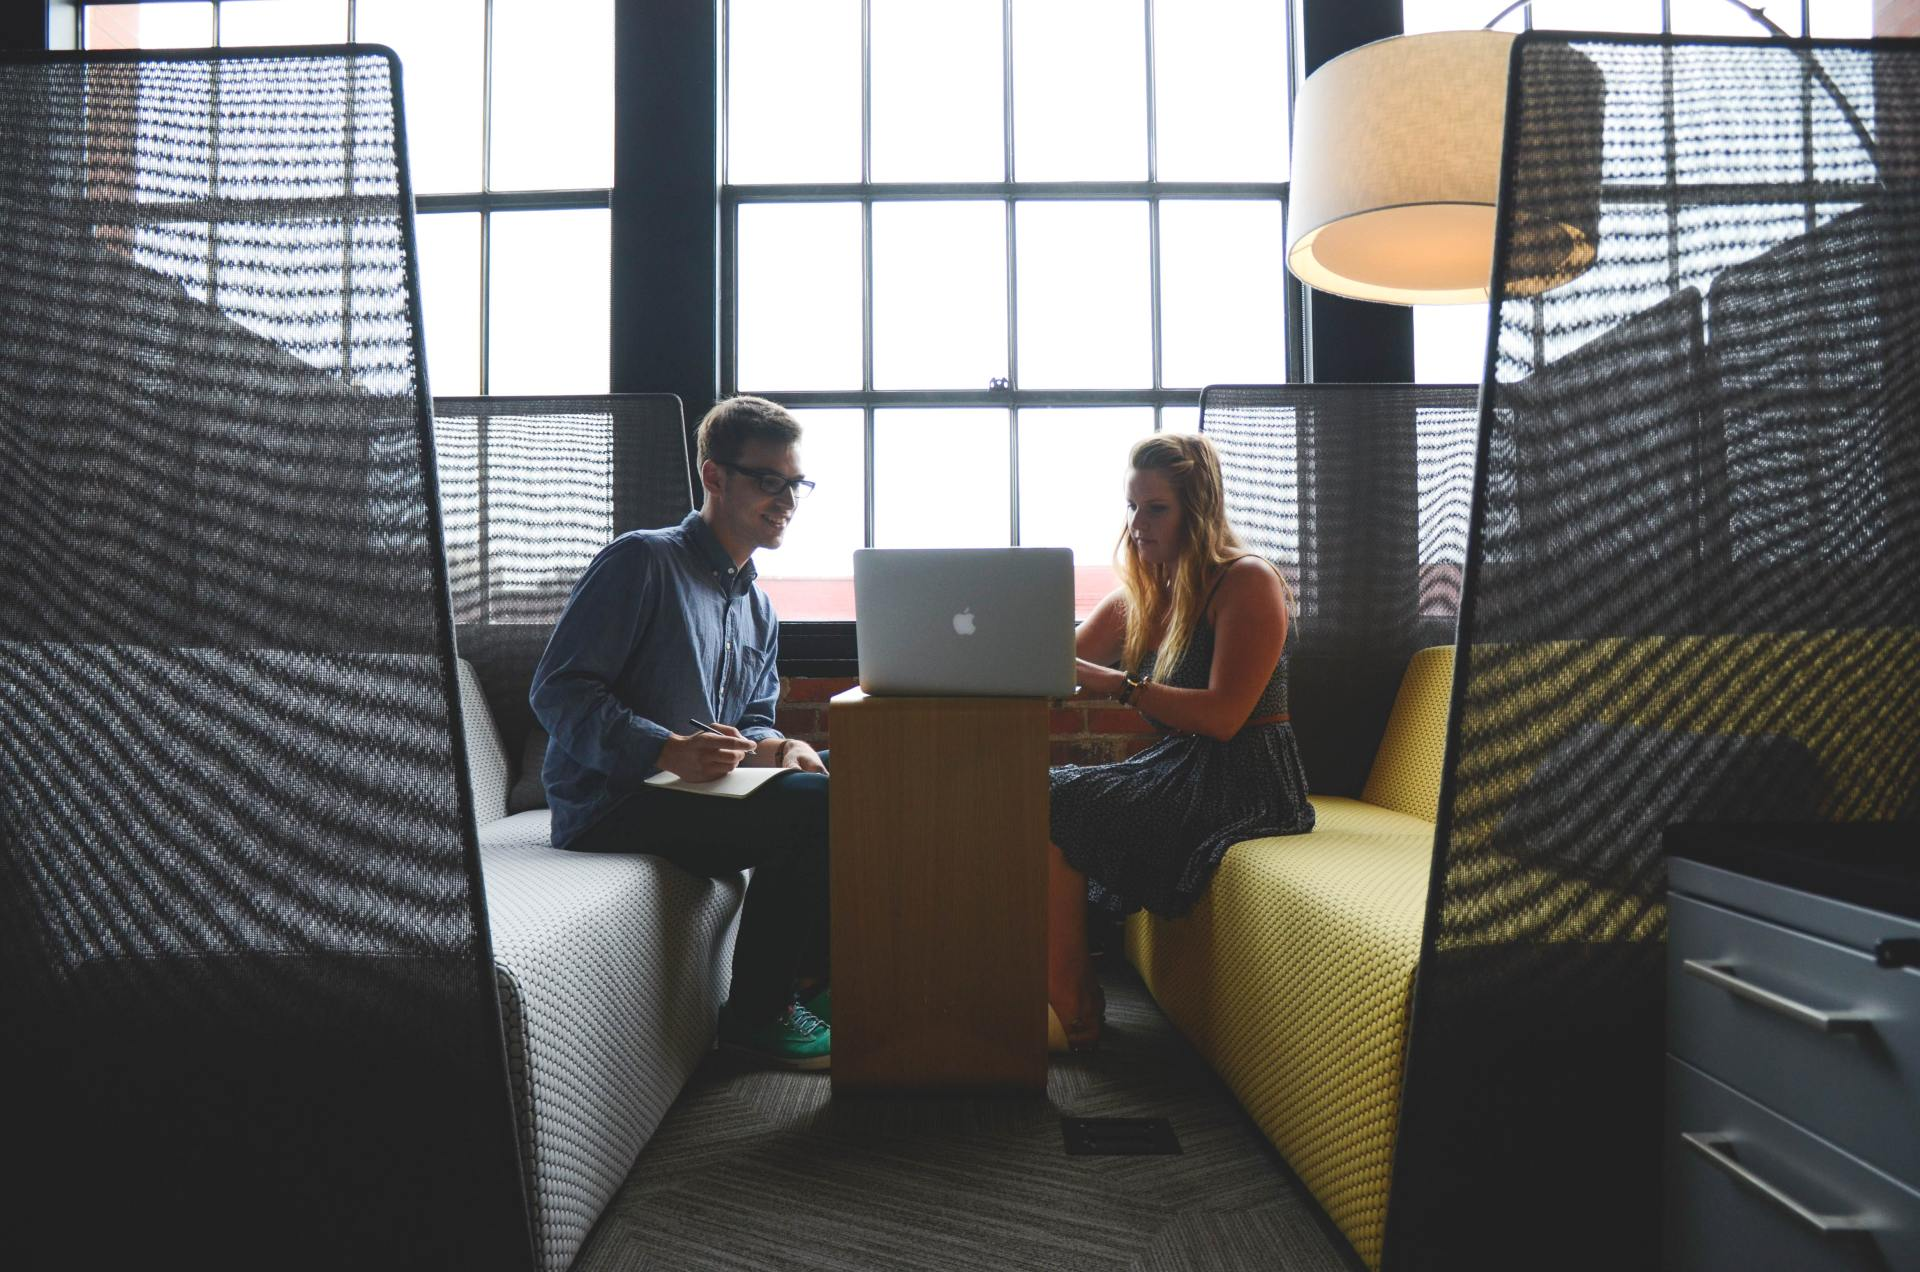 Can office design improve employee retention?